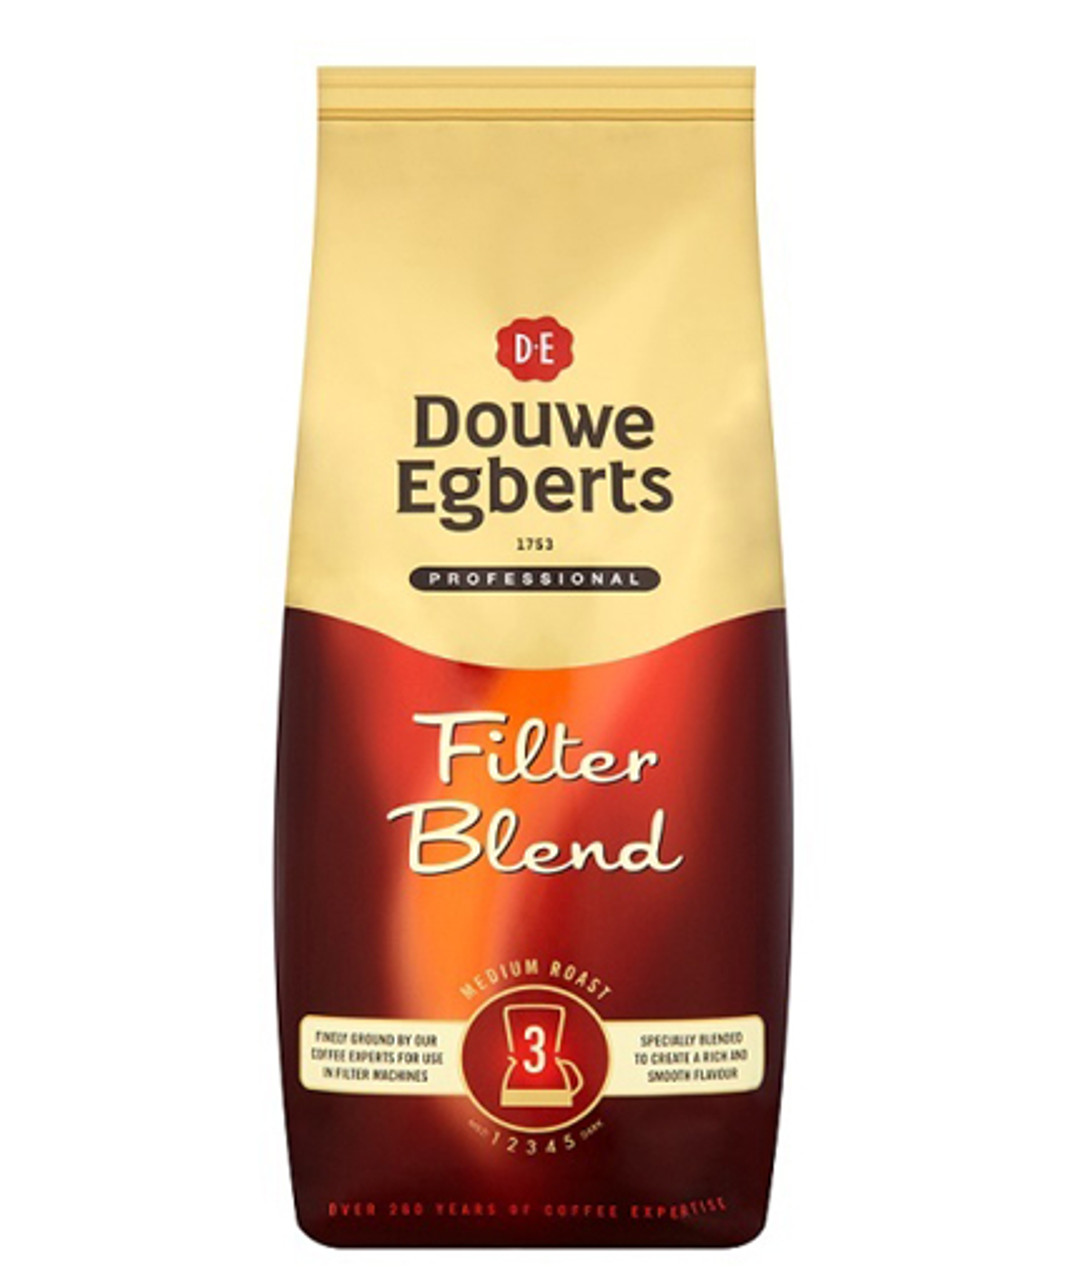 Douwe Egberts Professional Filter Coffee Blend 1kg